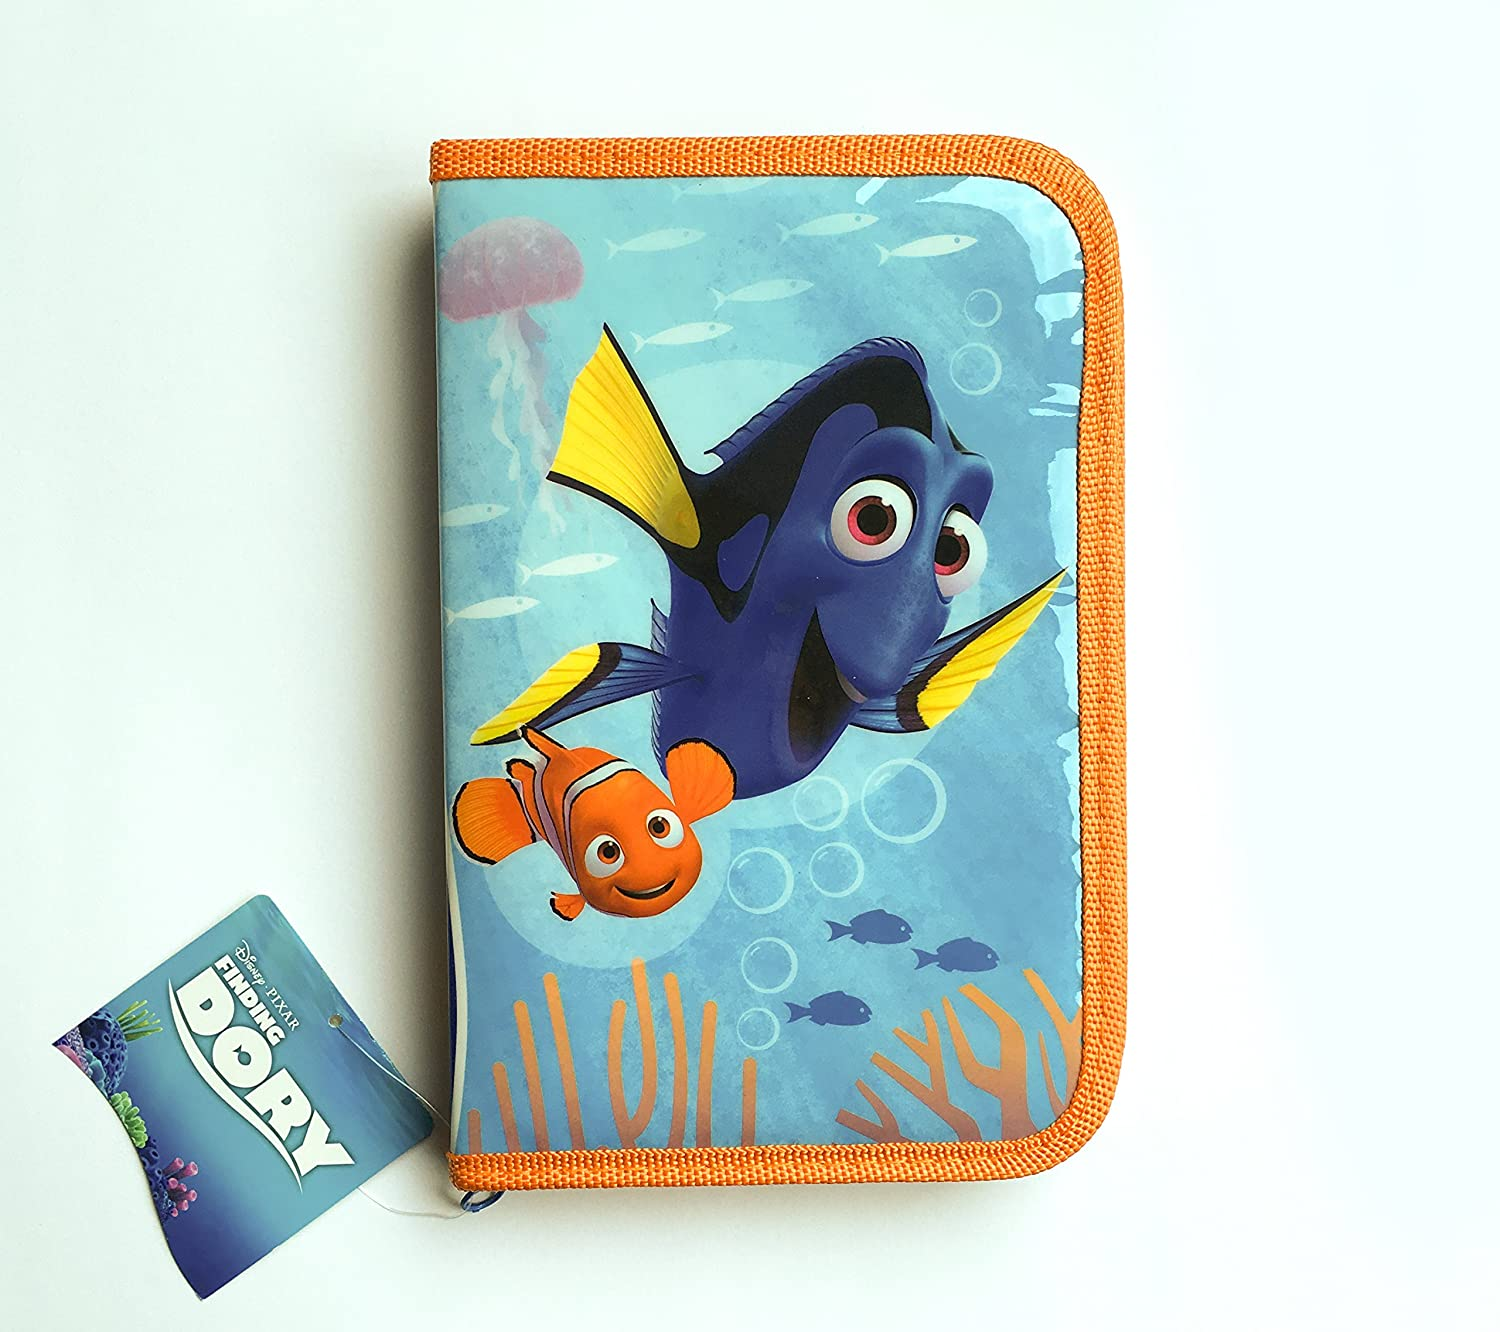 Finding Dory Filled Pencil Case Sharpener Pencil Eraser Notebook Nemo Stationery